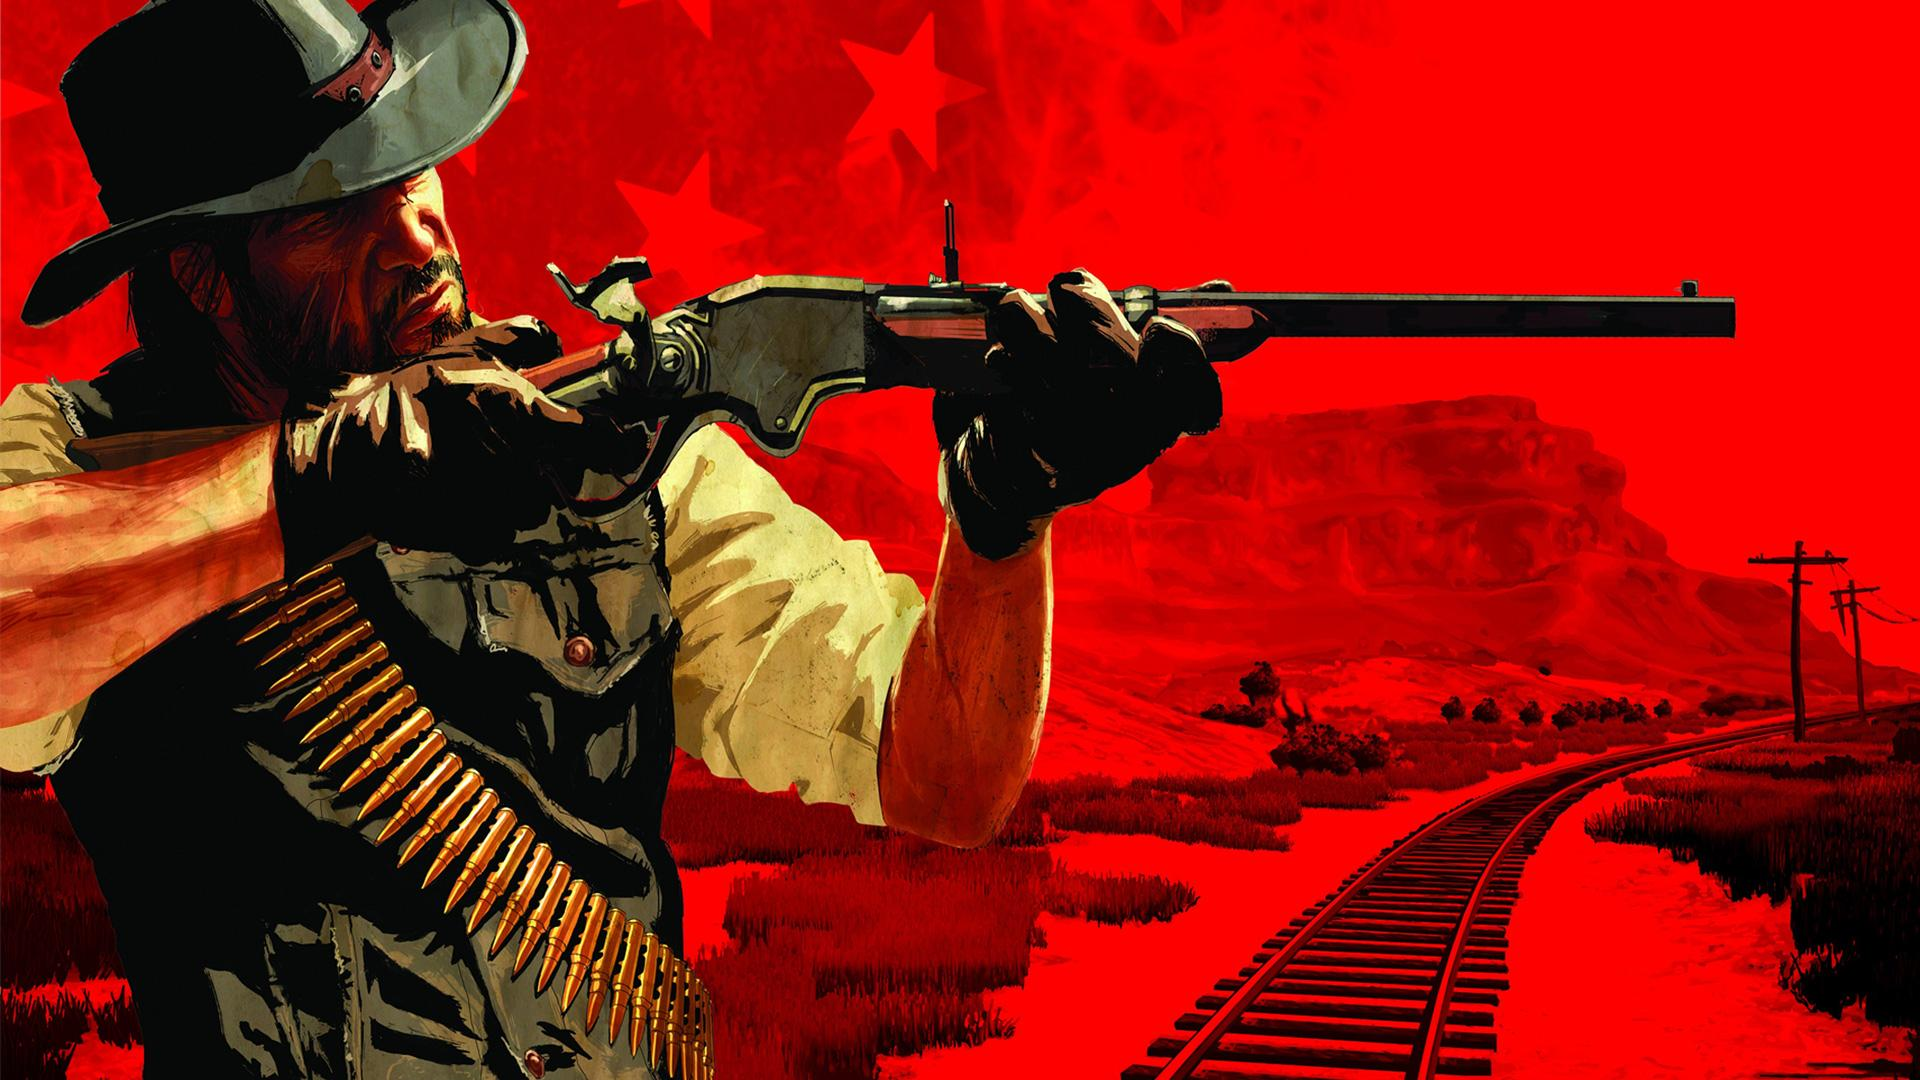 Red Dead Redemption II is out later this year – and will no doubt be a masterpiece